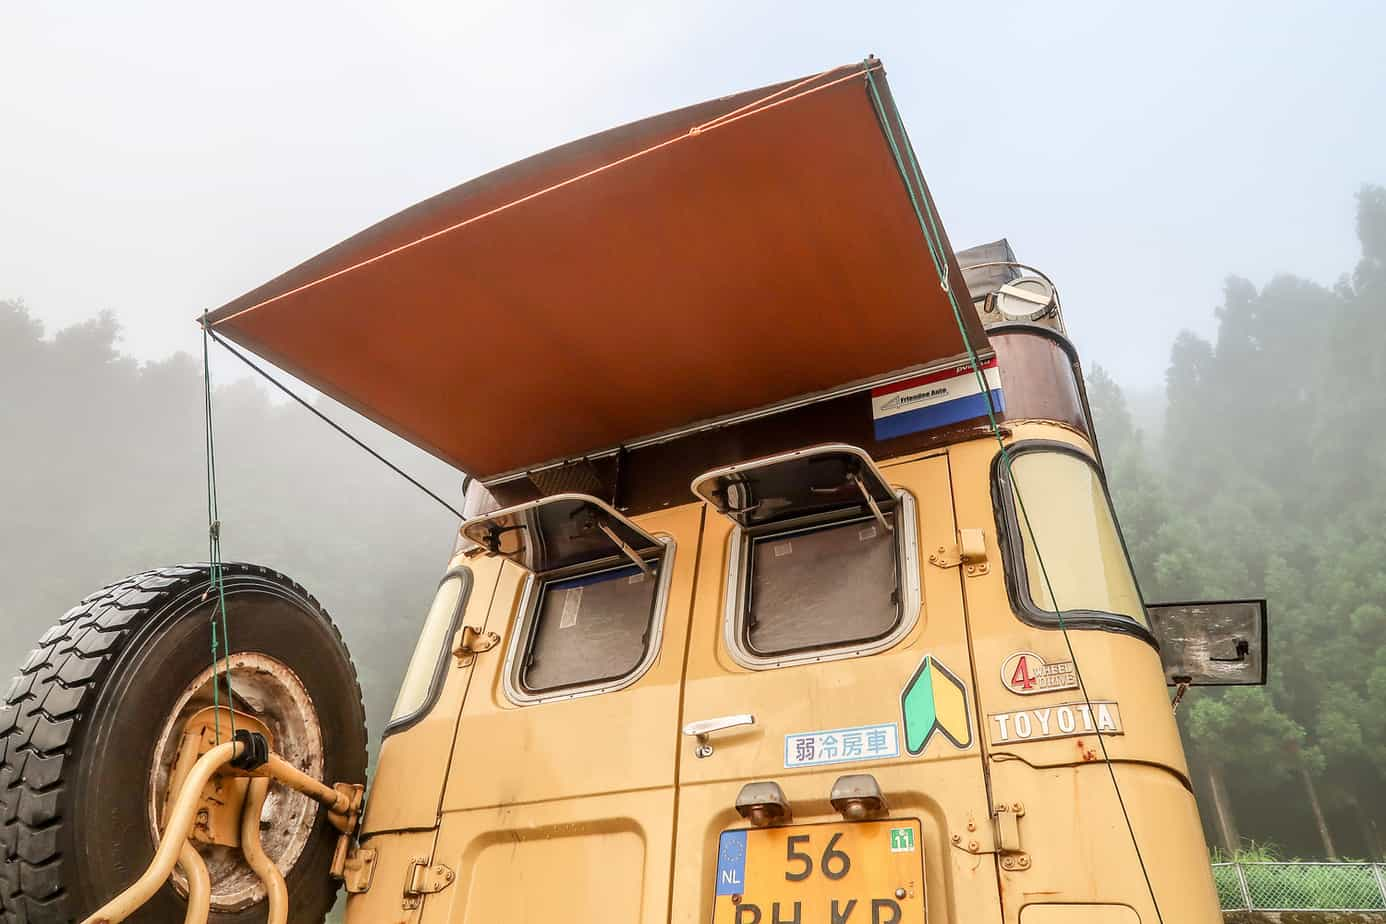 How To Build an Inexpensive Rear-door Awning - Expedition ...